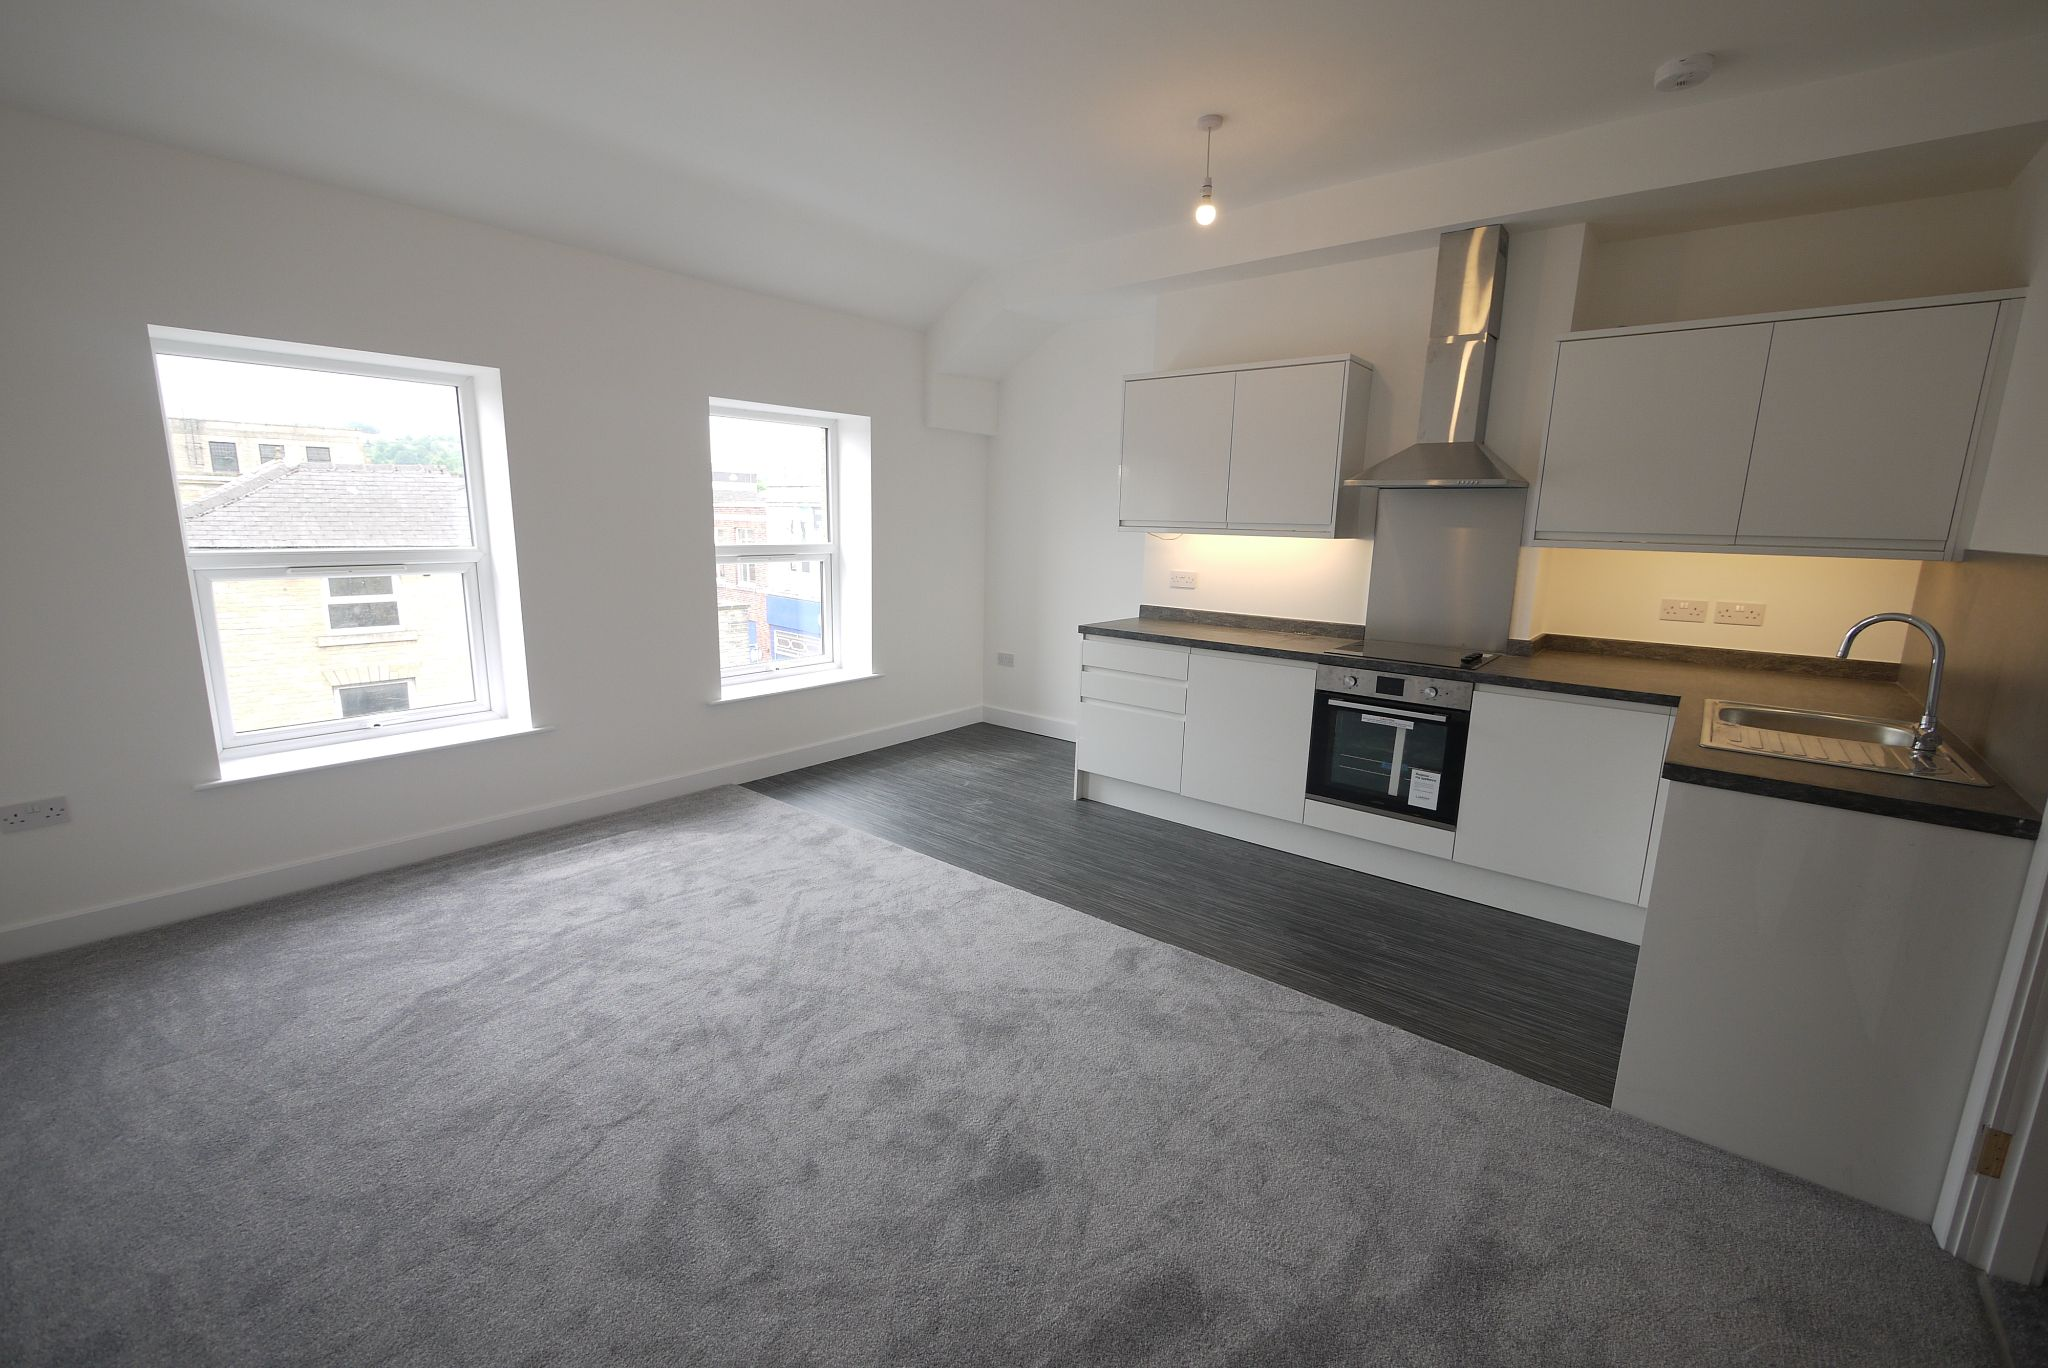 1 bedroom apartment flat/apartment To Let in Brighouse - Lounge.